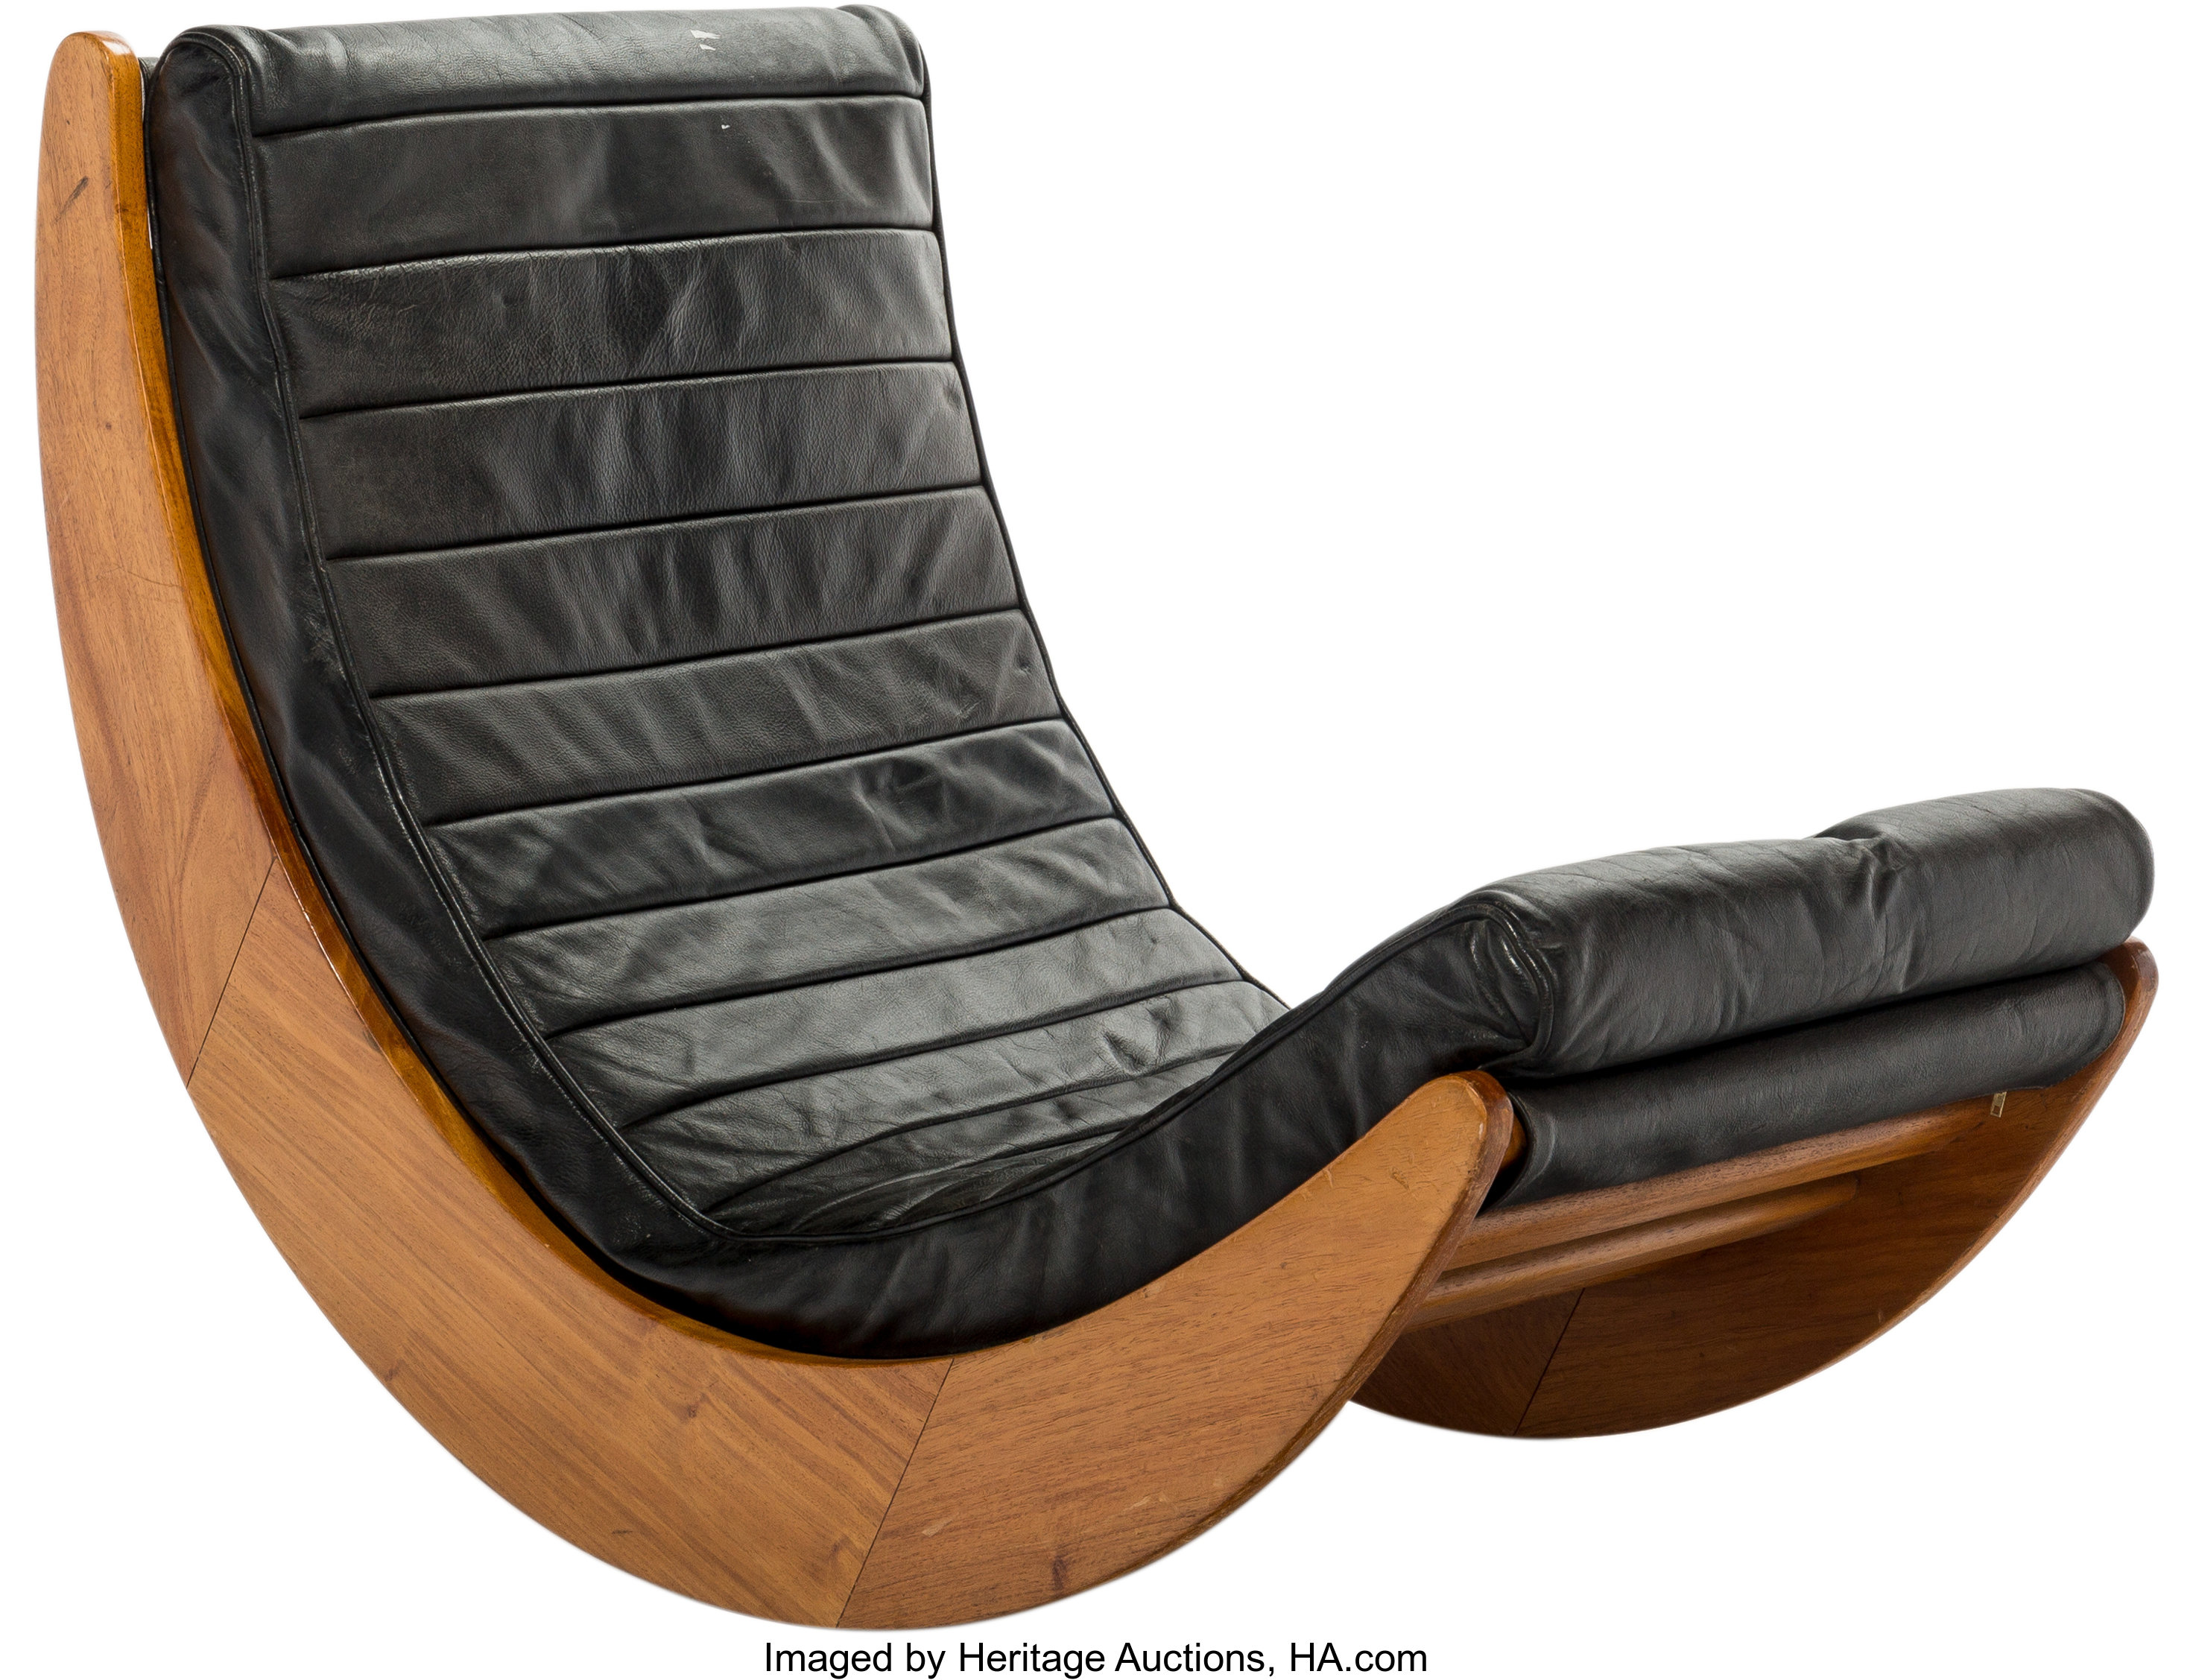 Chaise Panton Verner Panton a verner panton for rosenthal relaxer oak and black leather